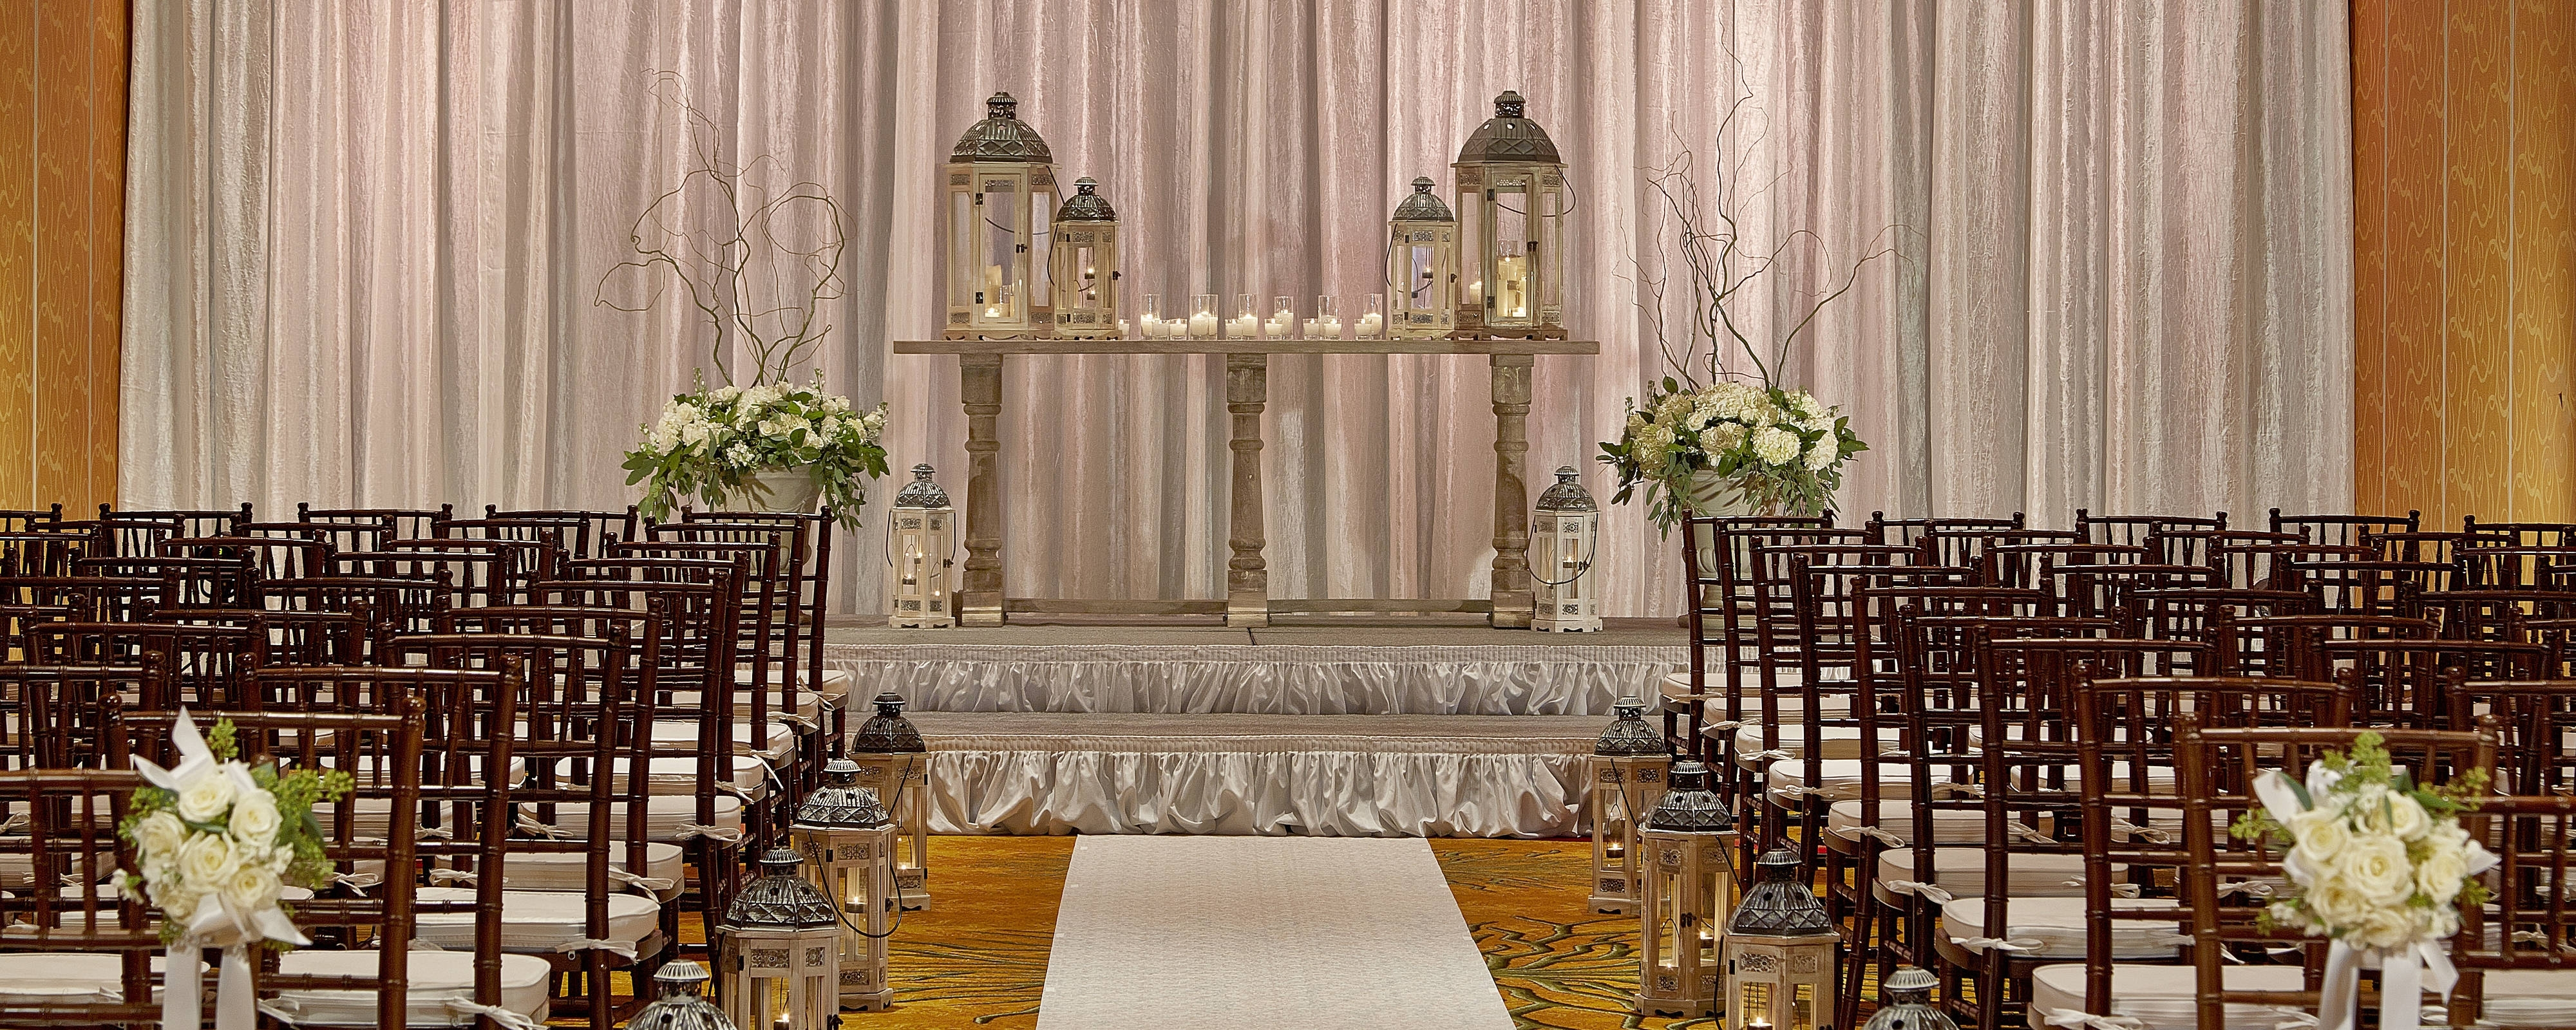 Fort Worth Wedding Venues | The Worthington Renaissance Fort Worth Hotel in Elm Grande Ii 2 Piece Sectionals (Image 16 of 30)